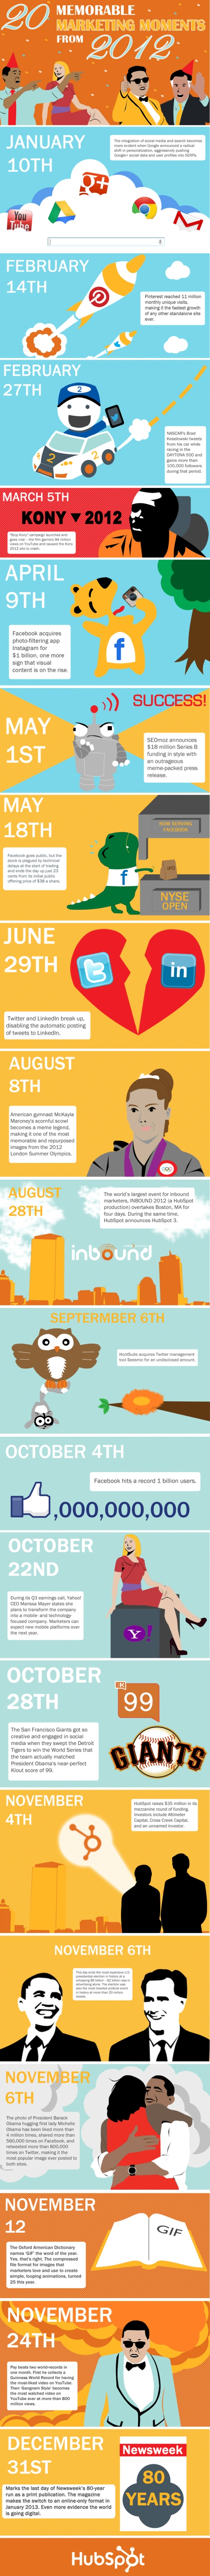 20-Memorable-Marketing-Moments-of-2012-HubSpot-Infographic